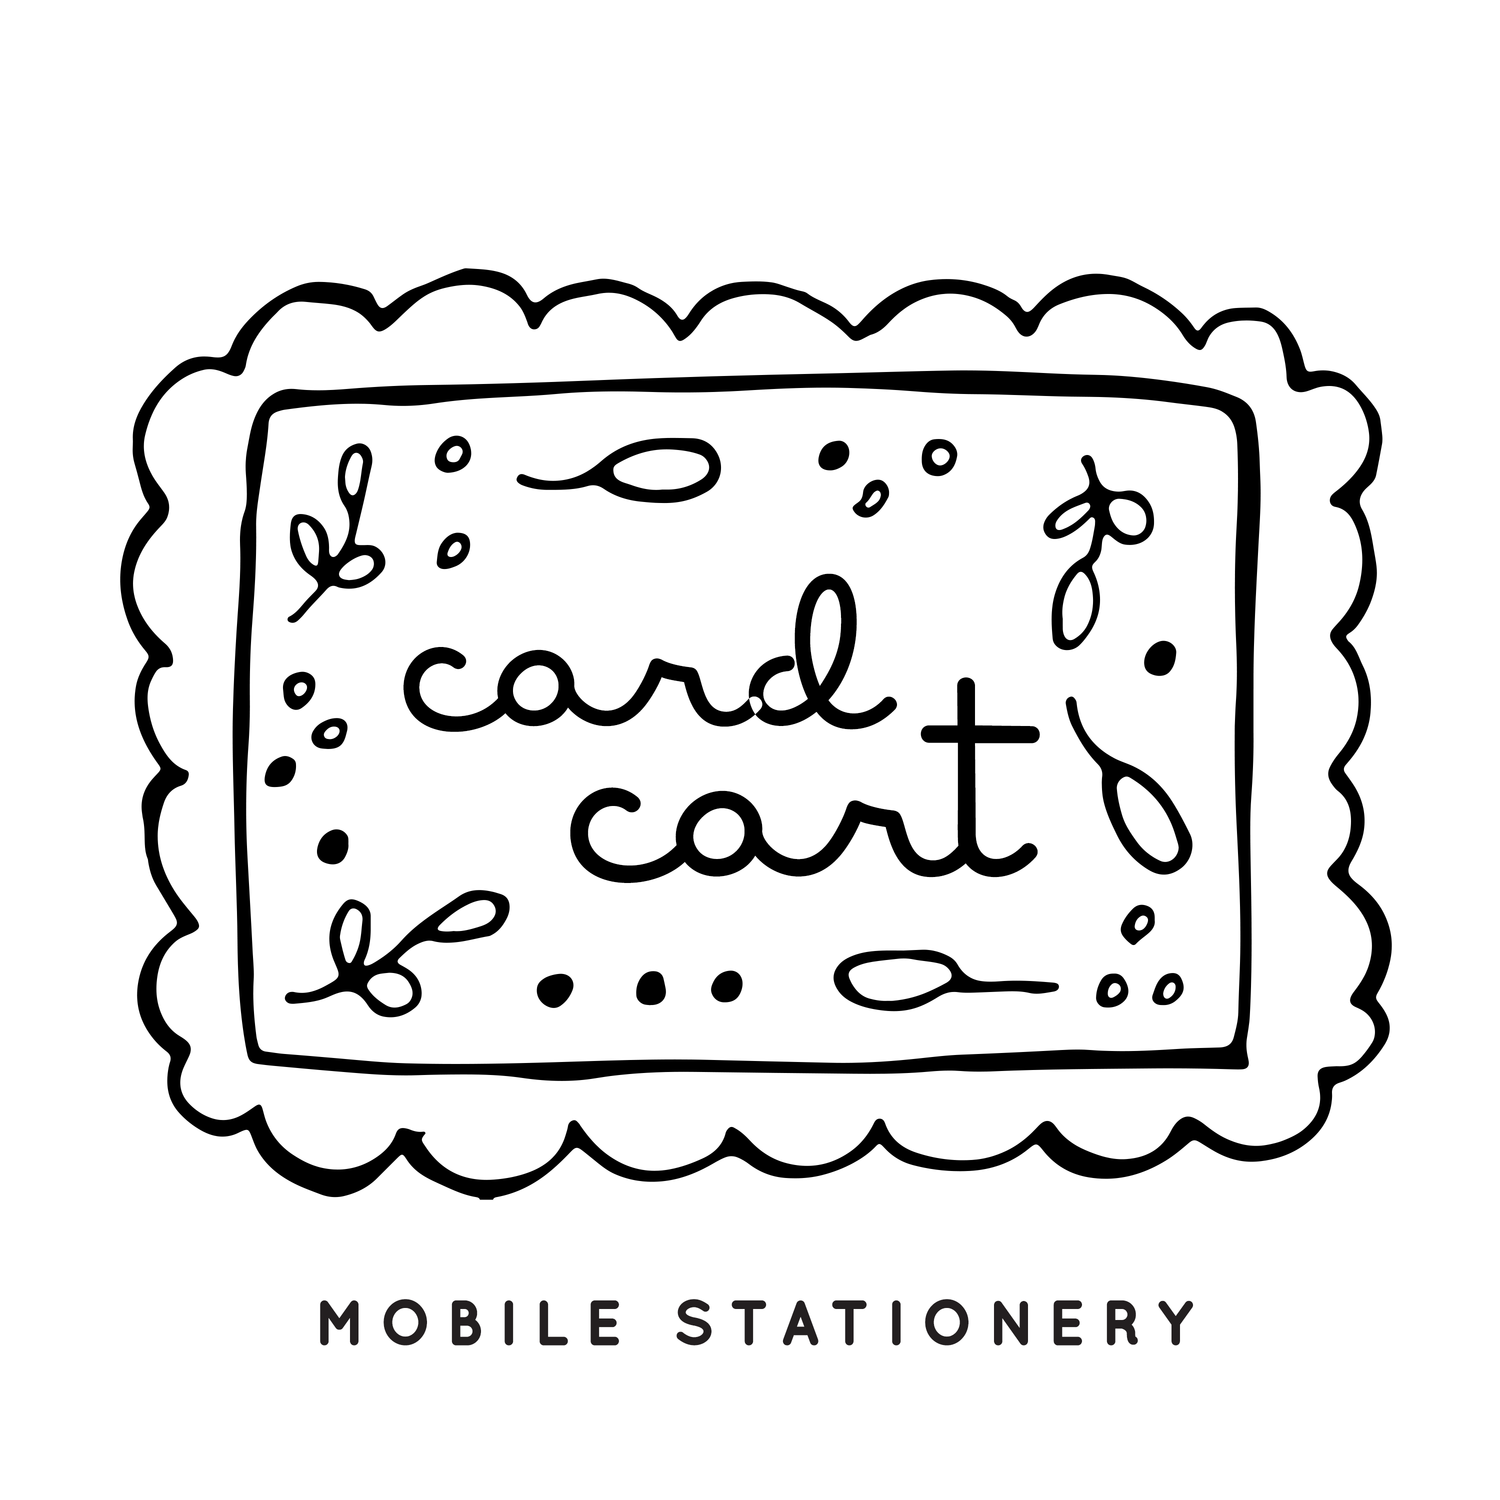 The Card Cart Co.